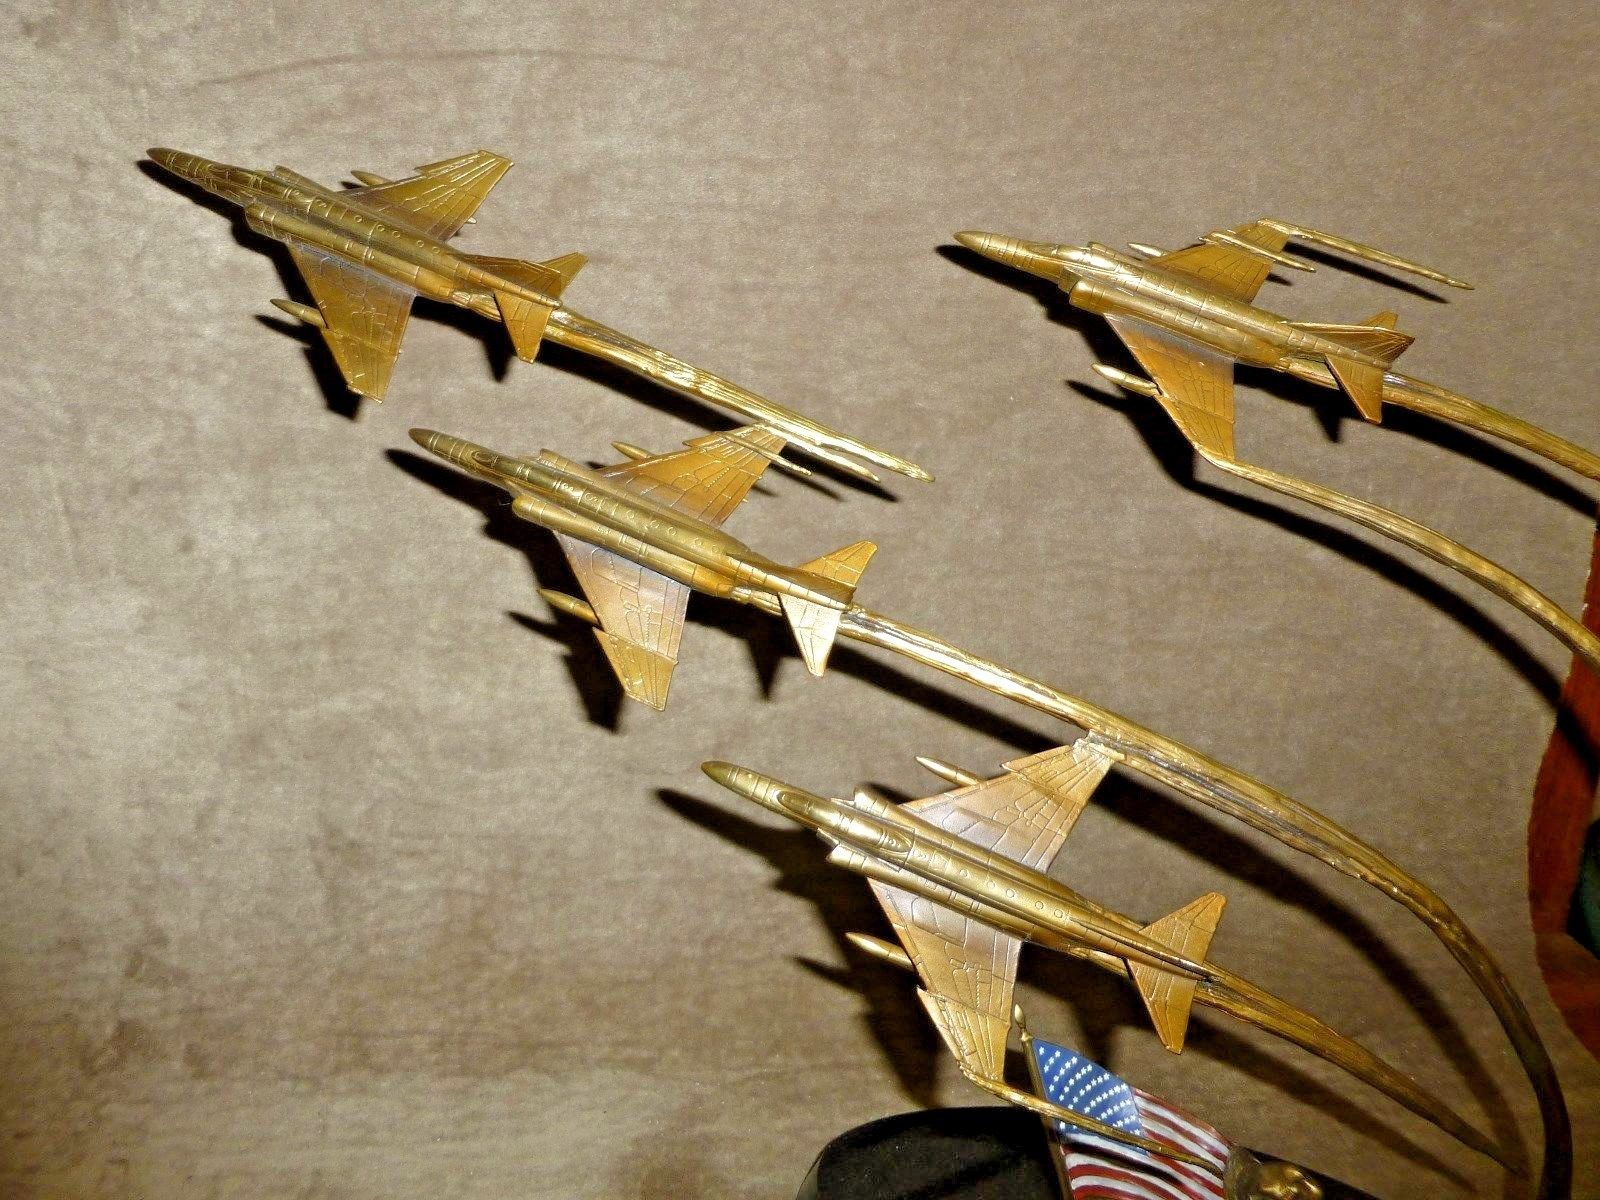 Flight of Remembrance Bronze Sculpture Franklin Mint Ltd Edition By Jim Dietz. This is a superb, - Image 2 of 2